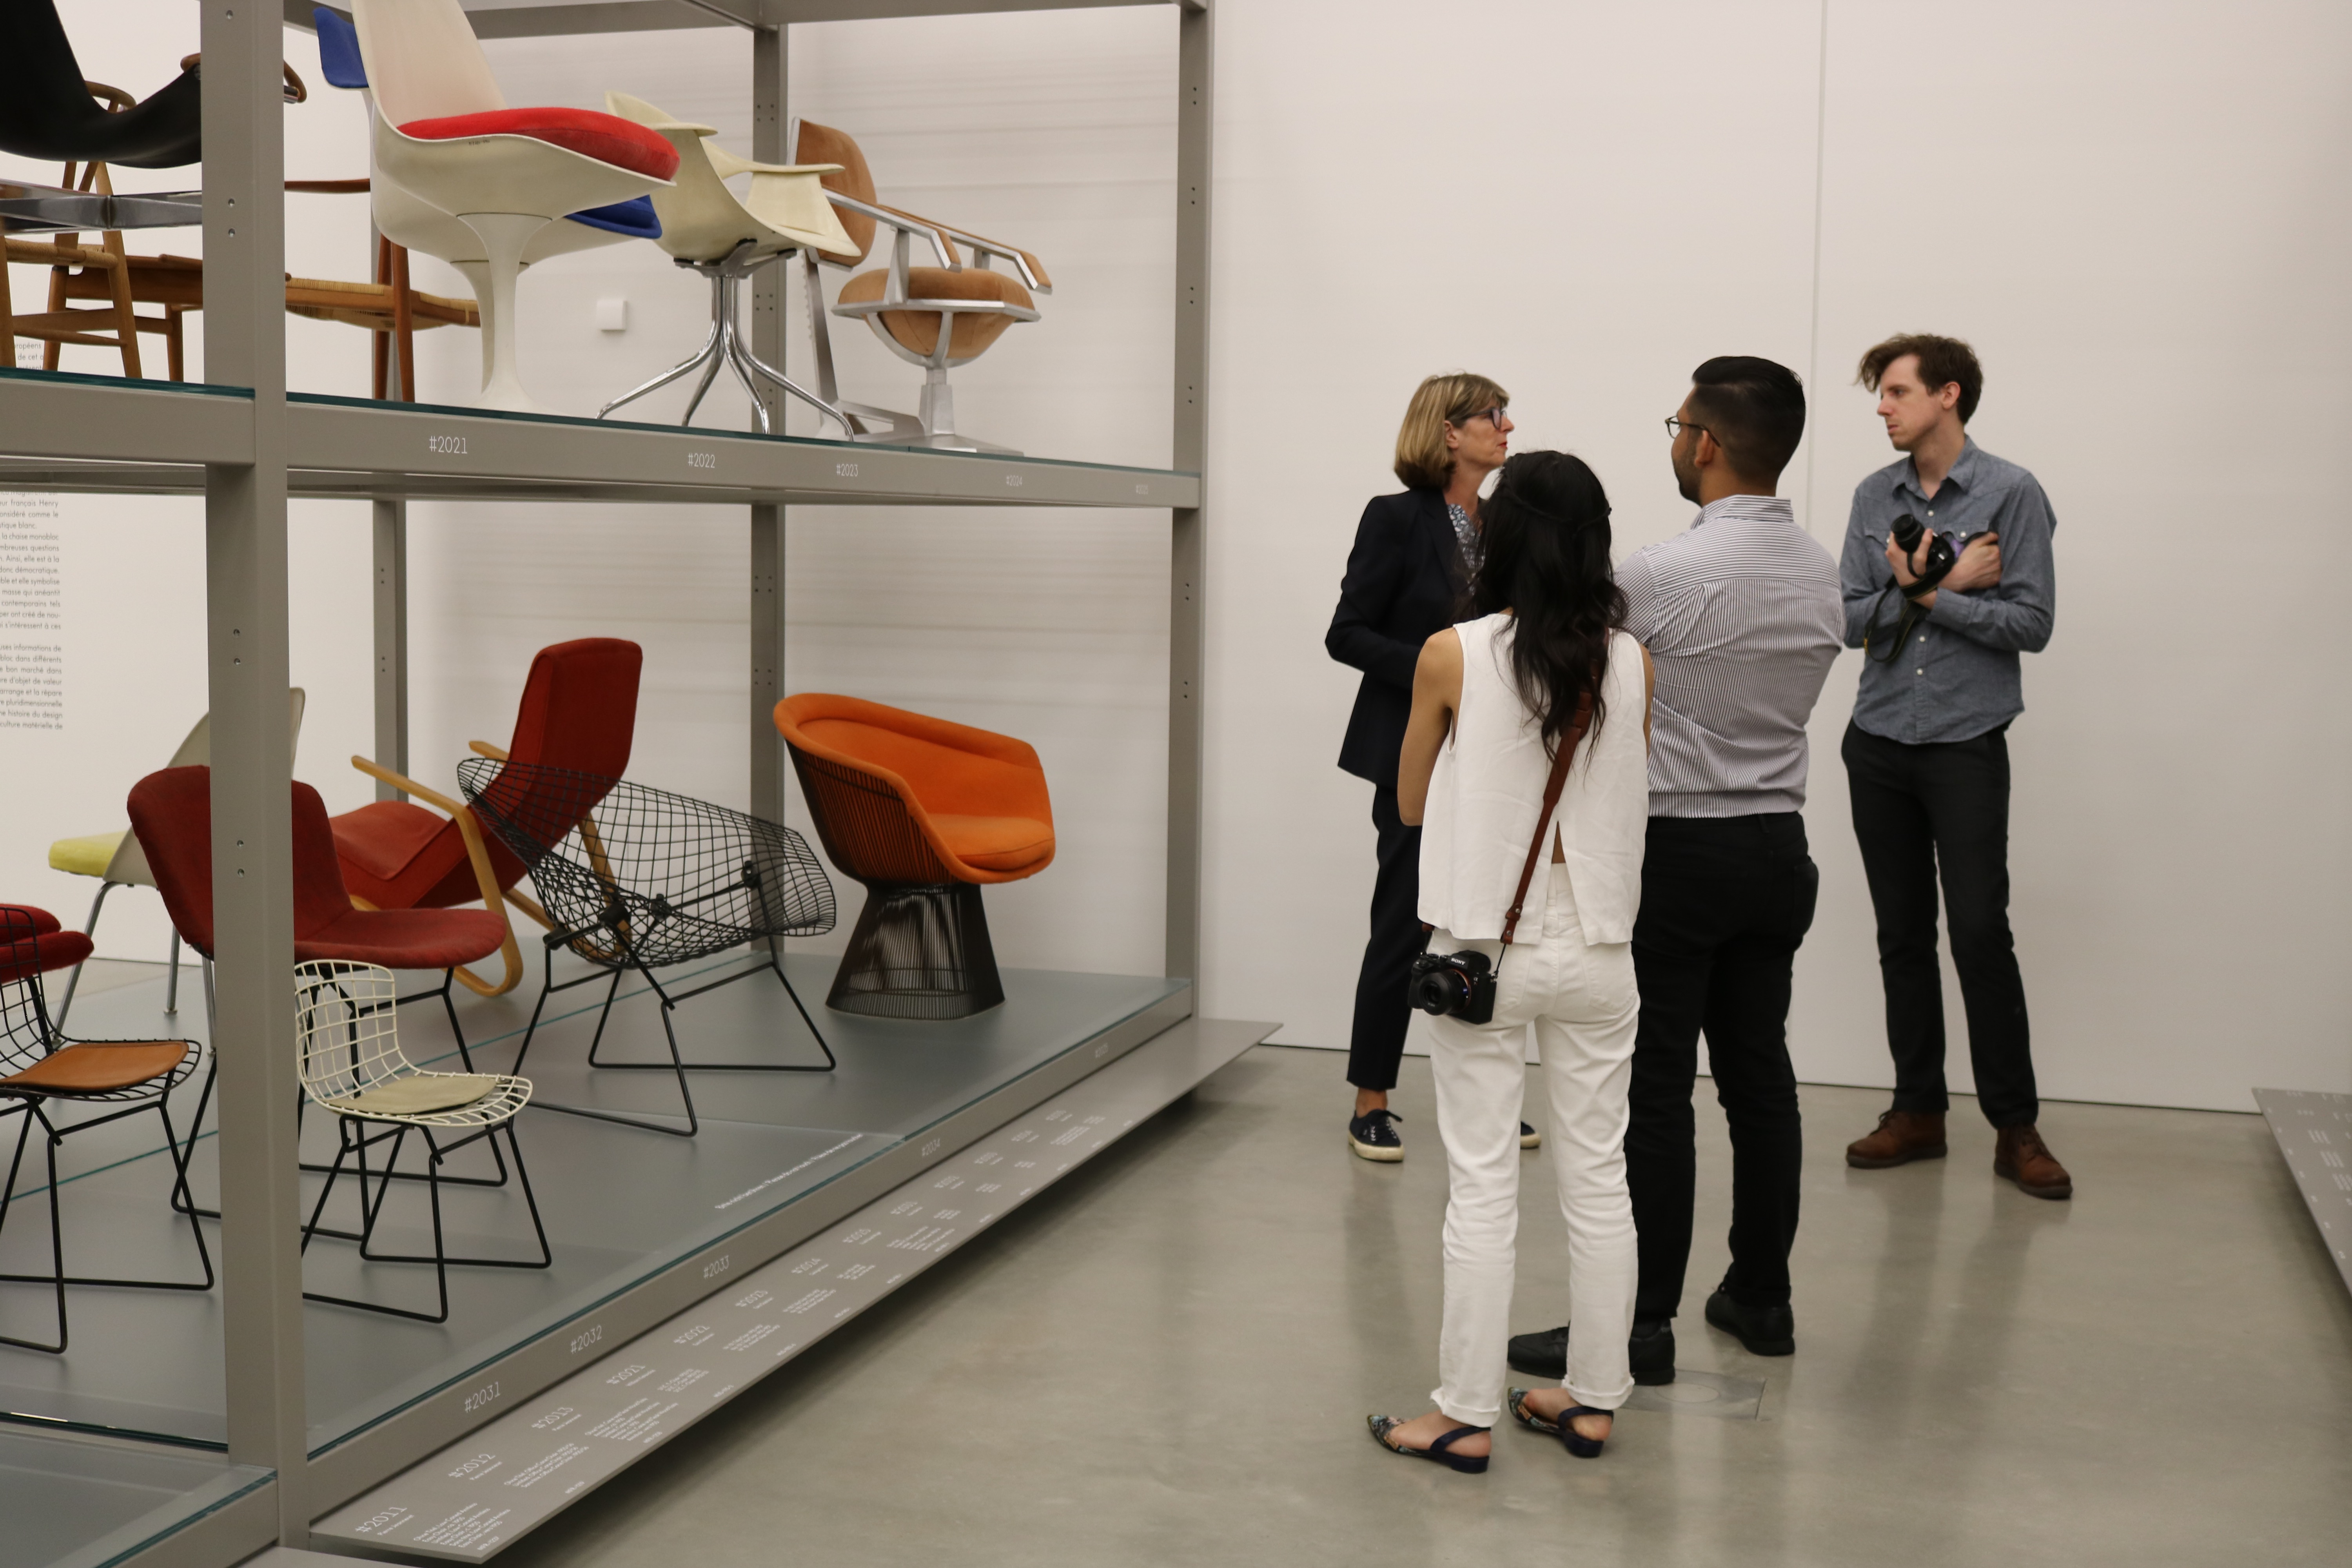 Career advice for design students from their peers